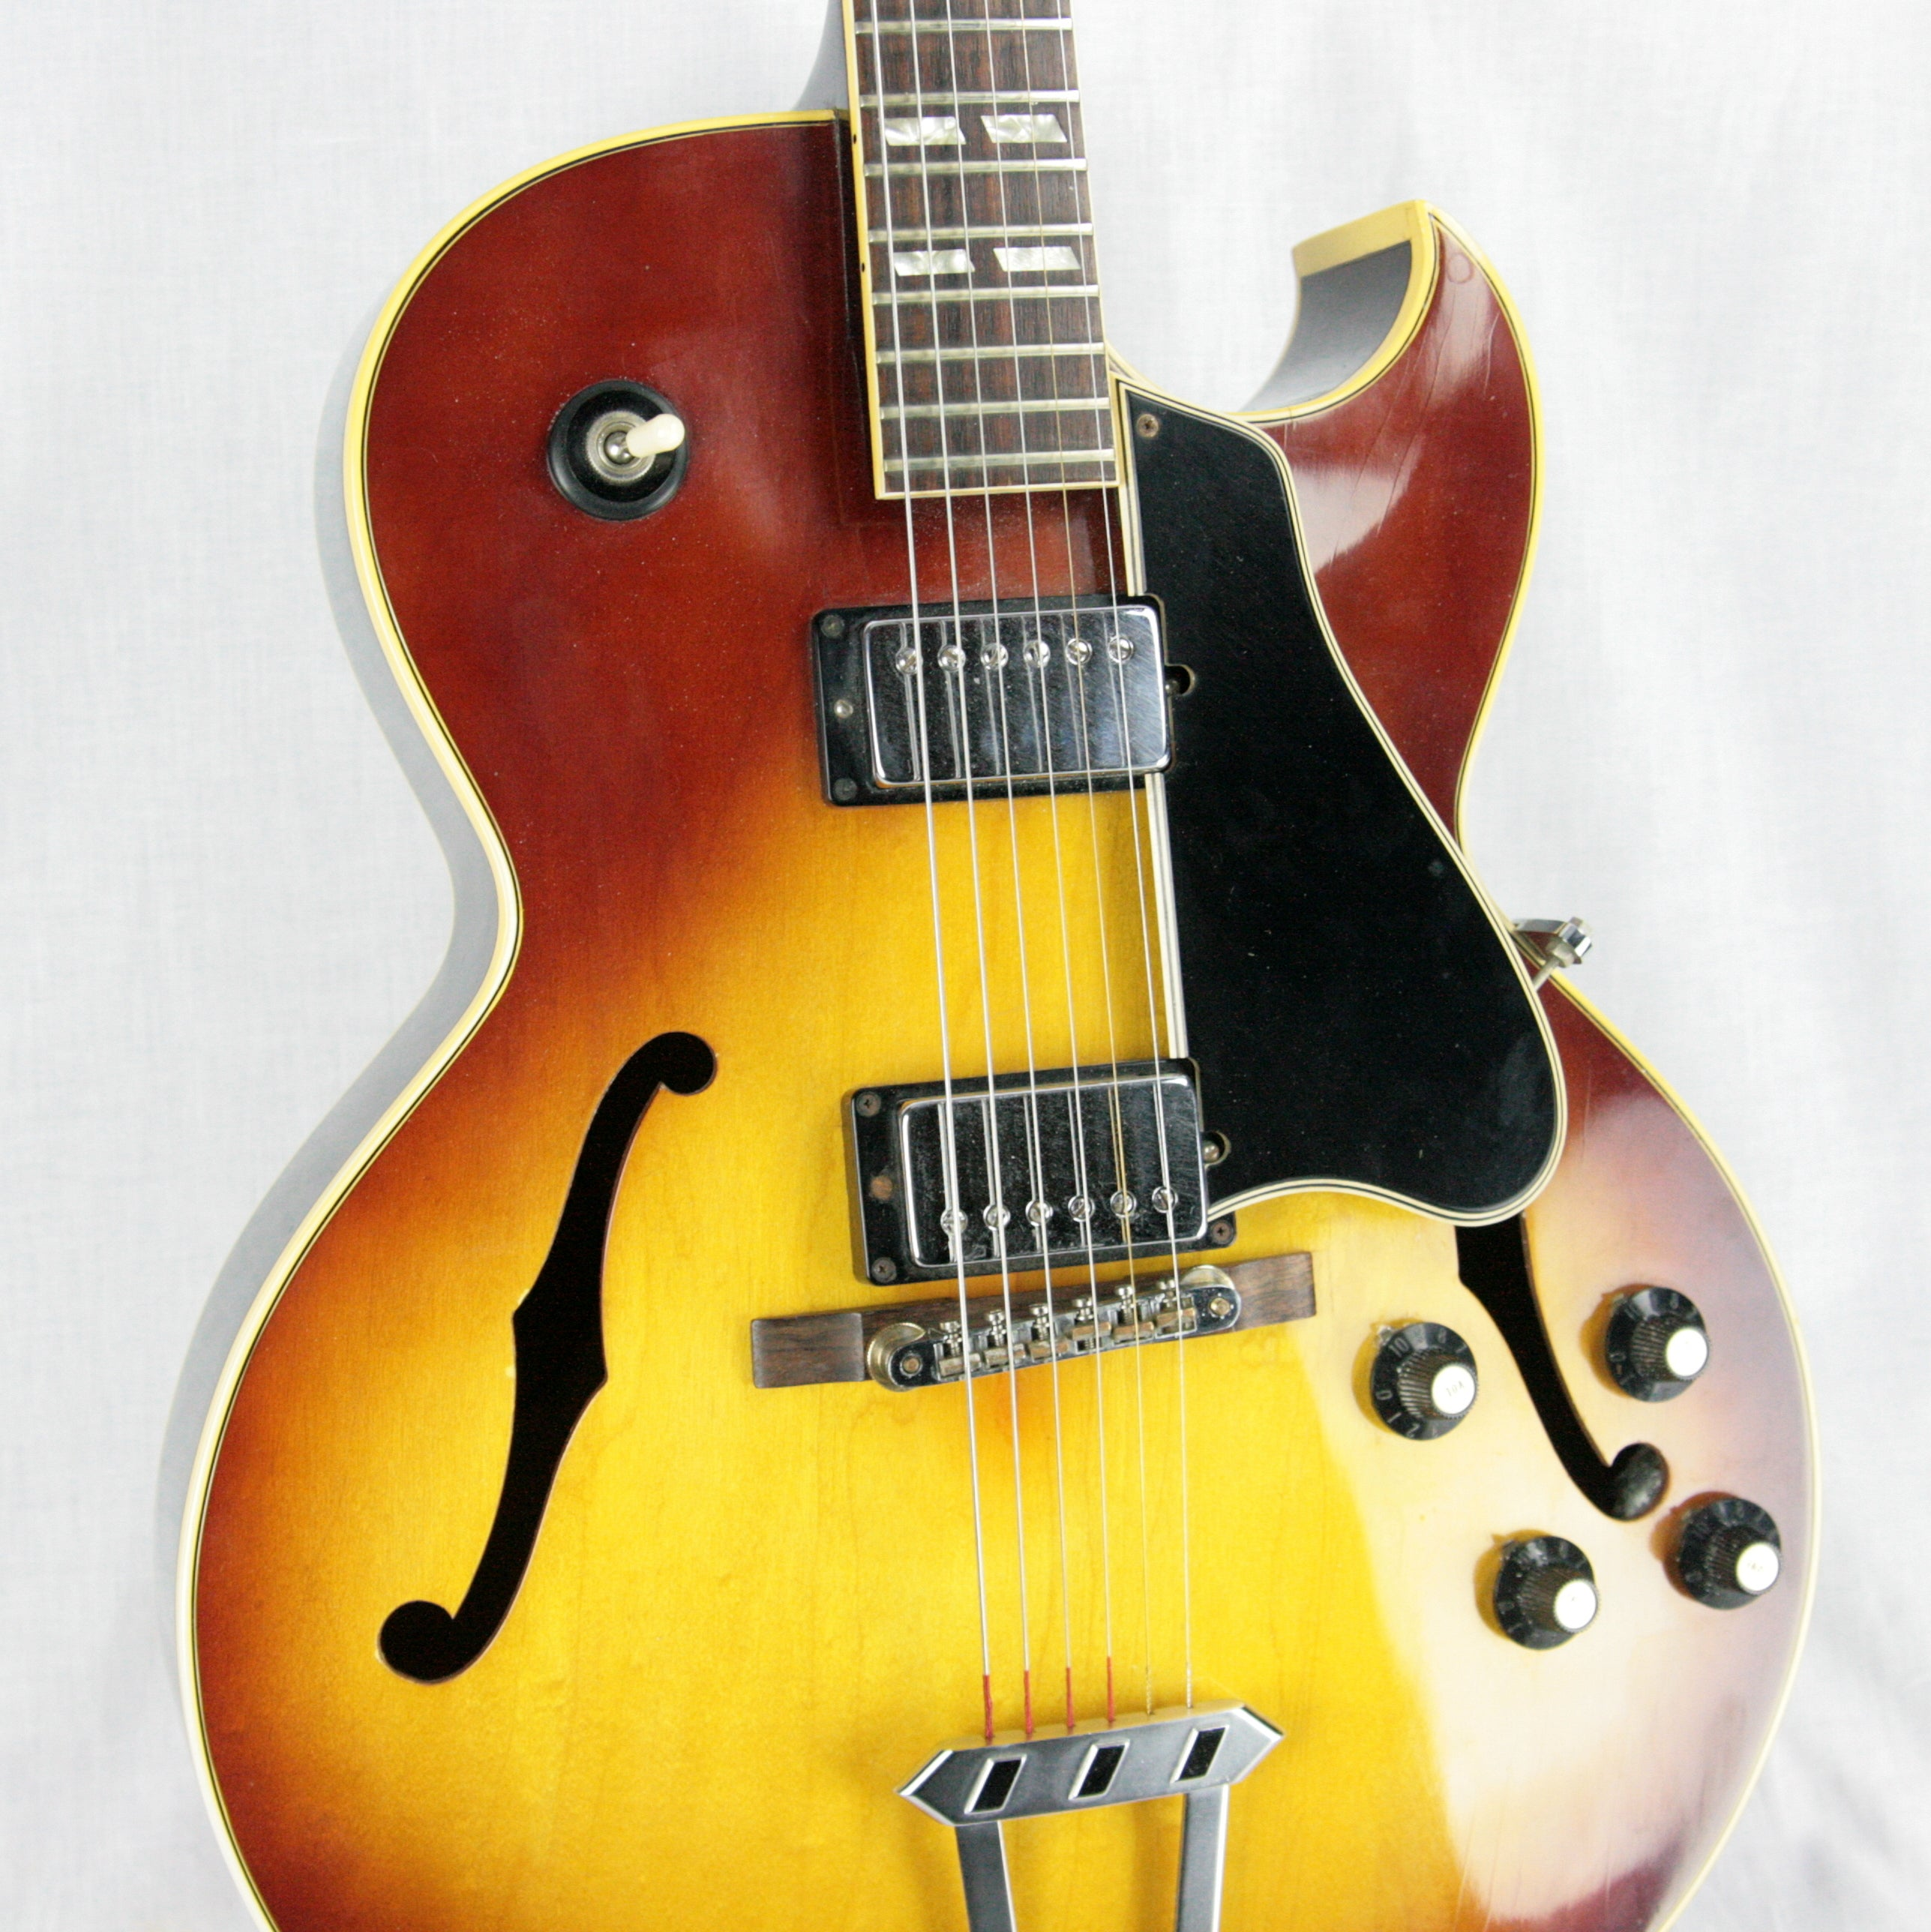 1969-1970 Gibson ES-175 Archtop Electric Guitar! Sunburst Finish, No Volute, Patent Sticker Pups!